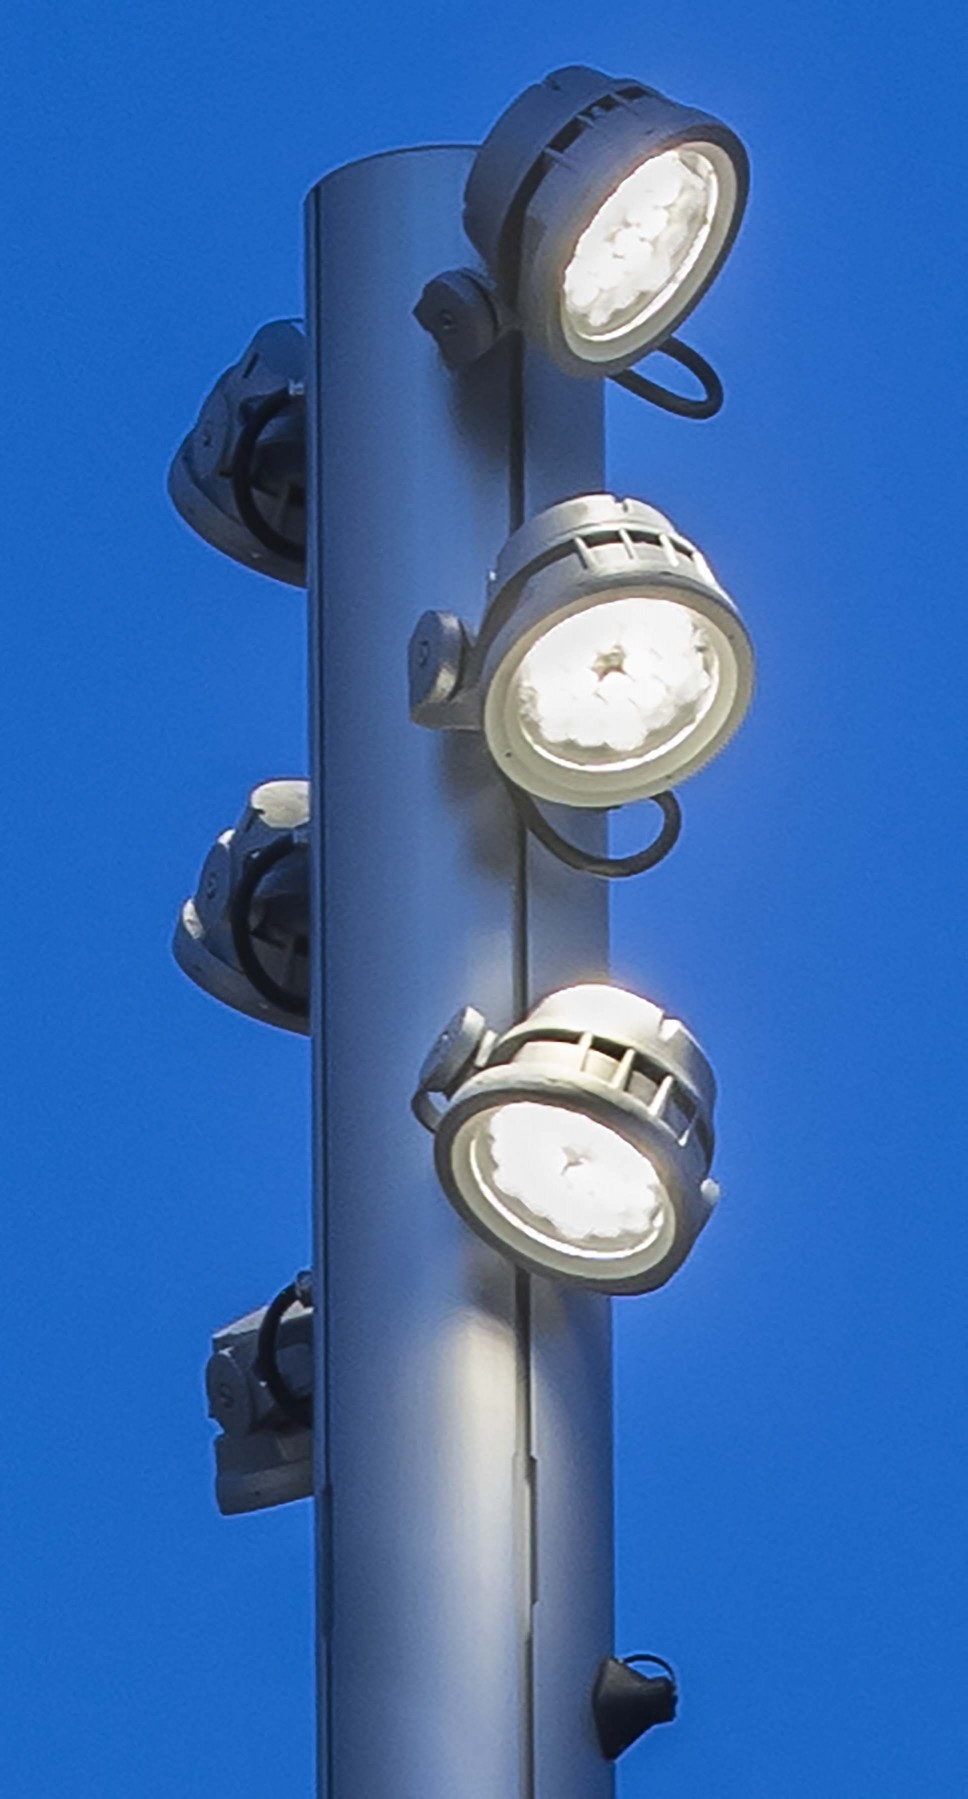 To meet this challenge, six Lumenbeam Medium luminaires were integrated with each of the 33 masts of the promenade. – Xavier Boymond